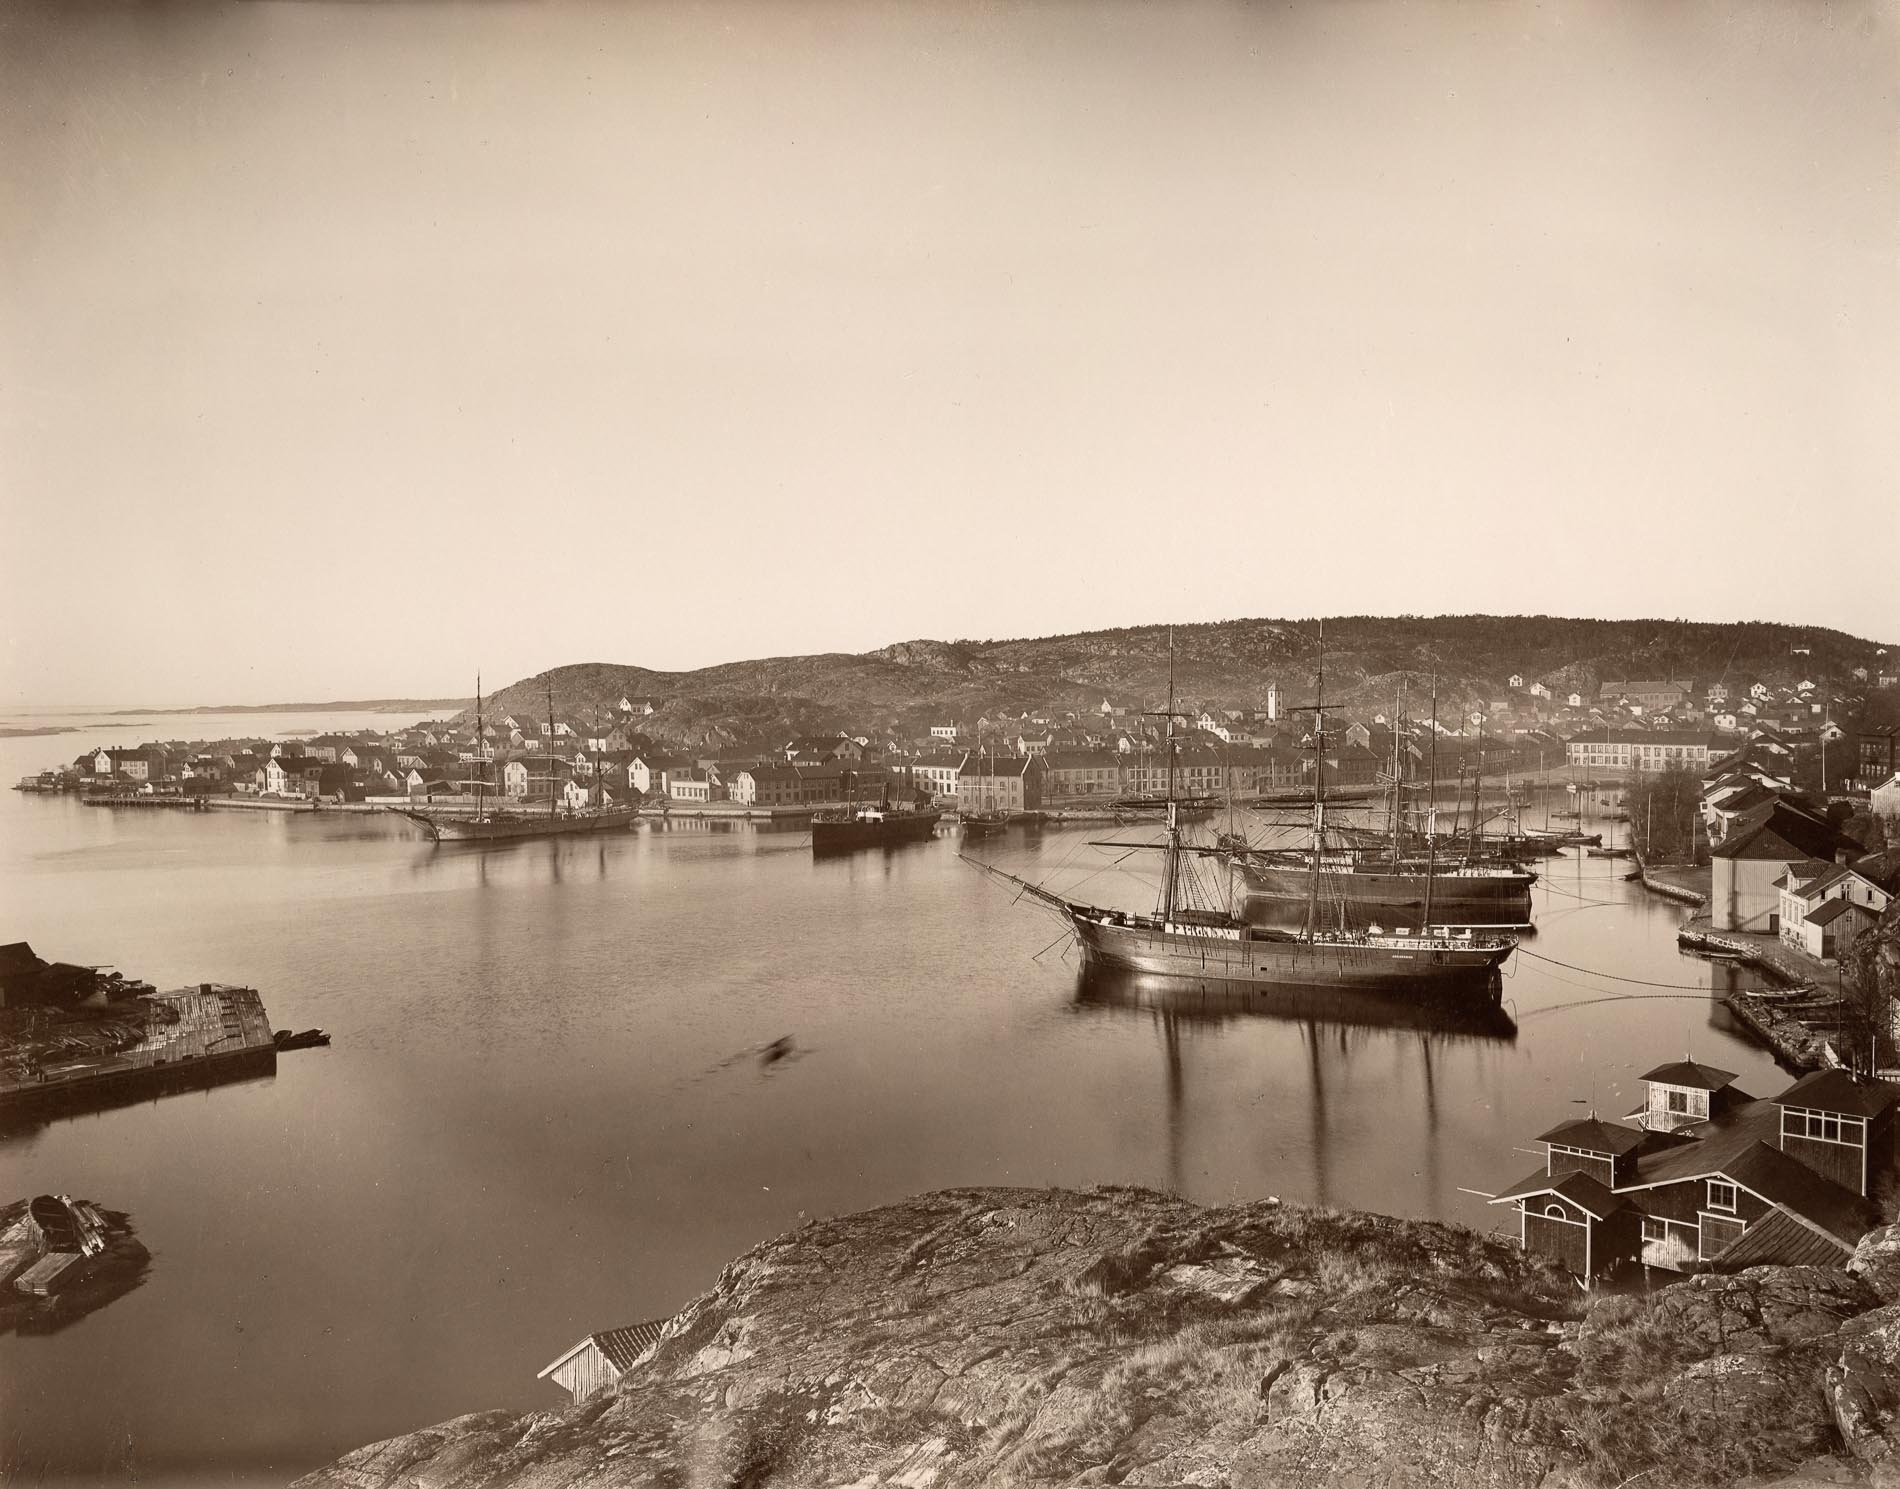 Historic view of sailing ships in Risør harbour